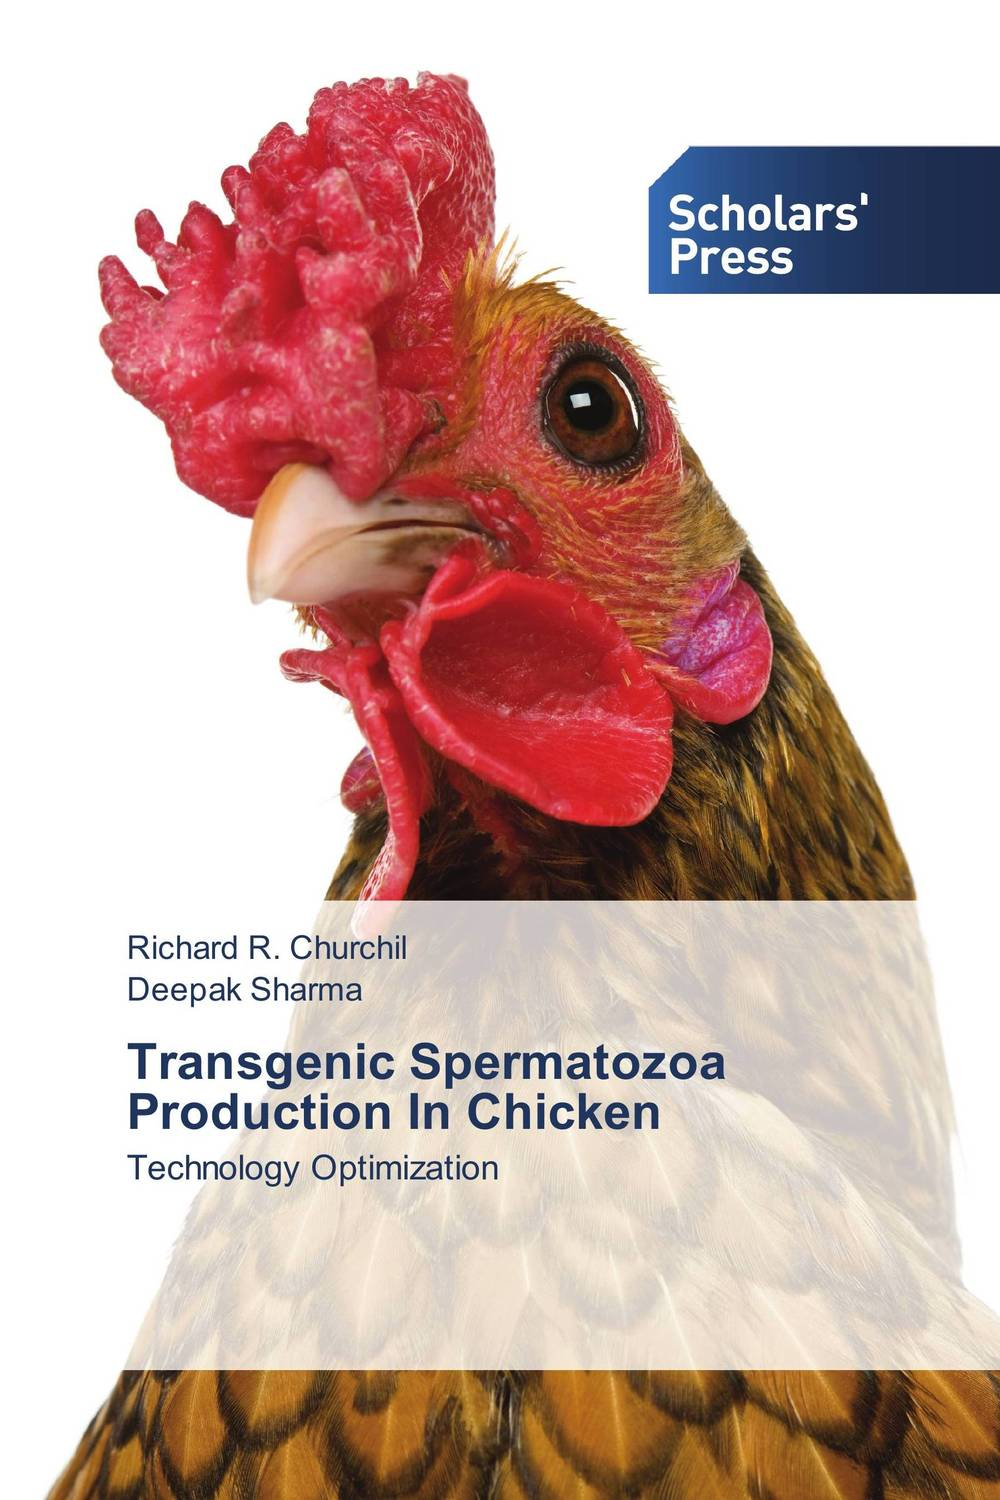 Transgenic Spermatozoa Production In Chicken polymorphisms at candidate genes for disease resistance in chicken